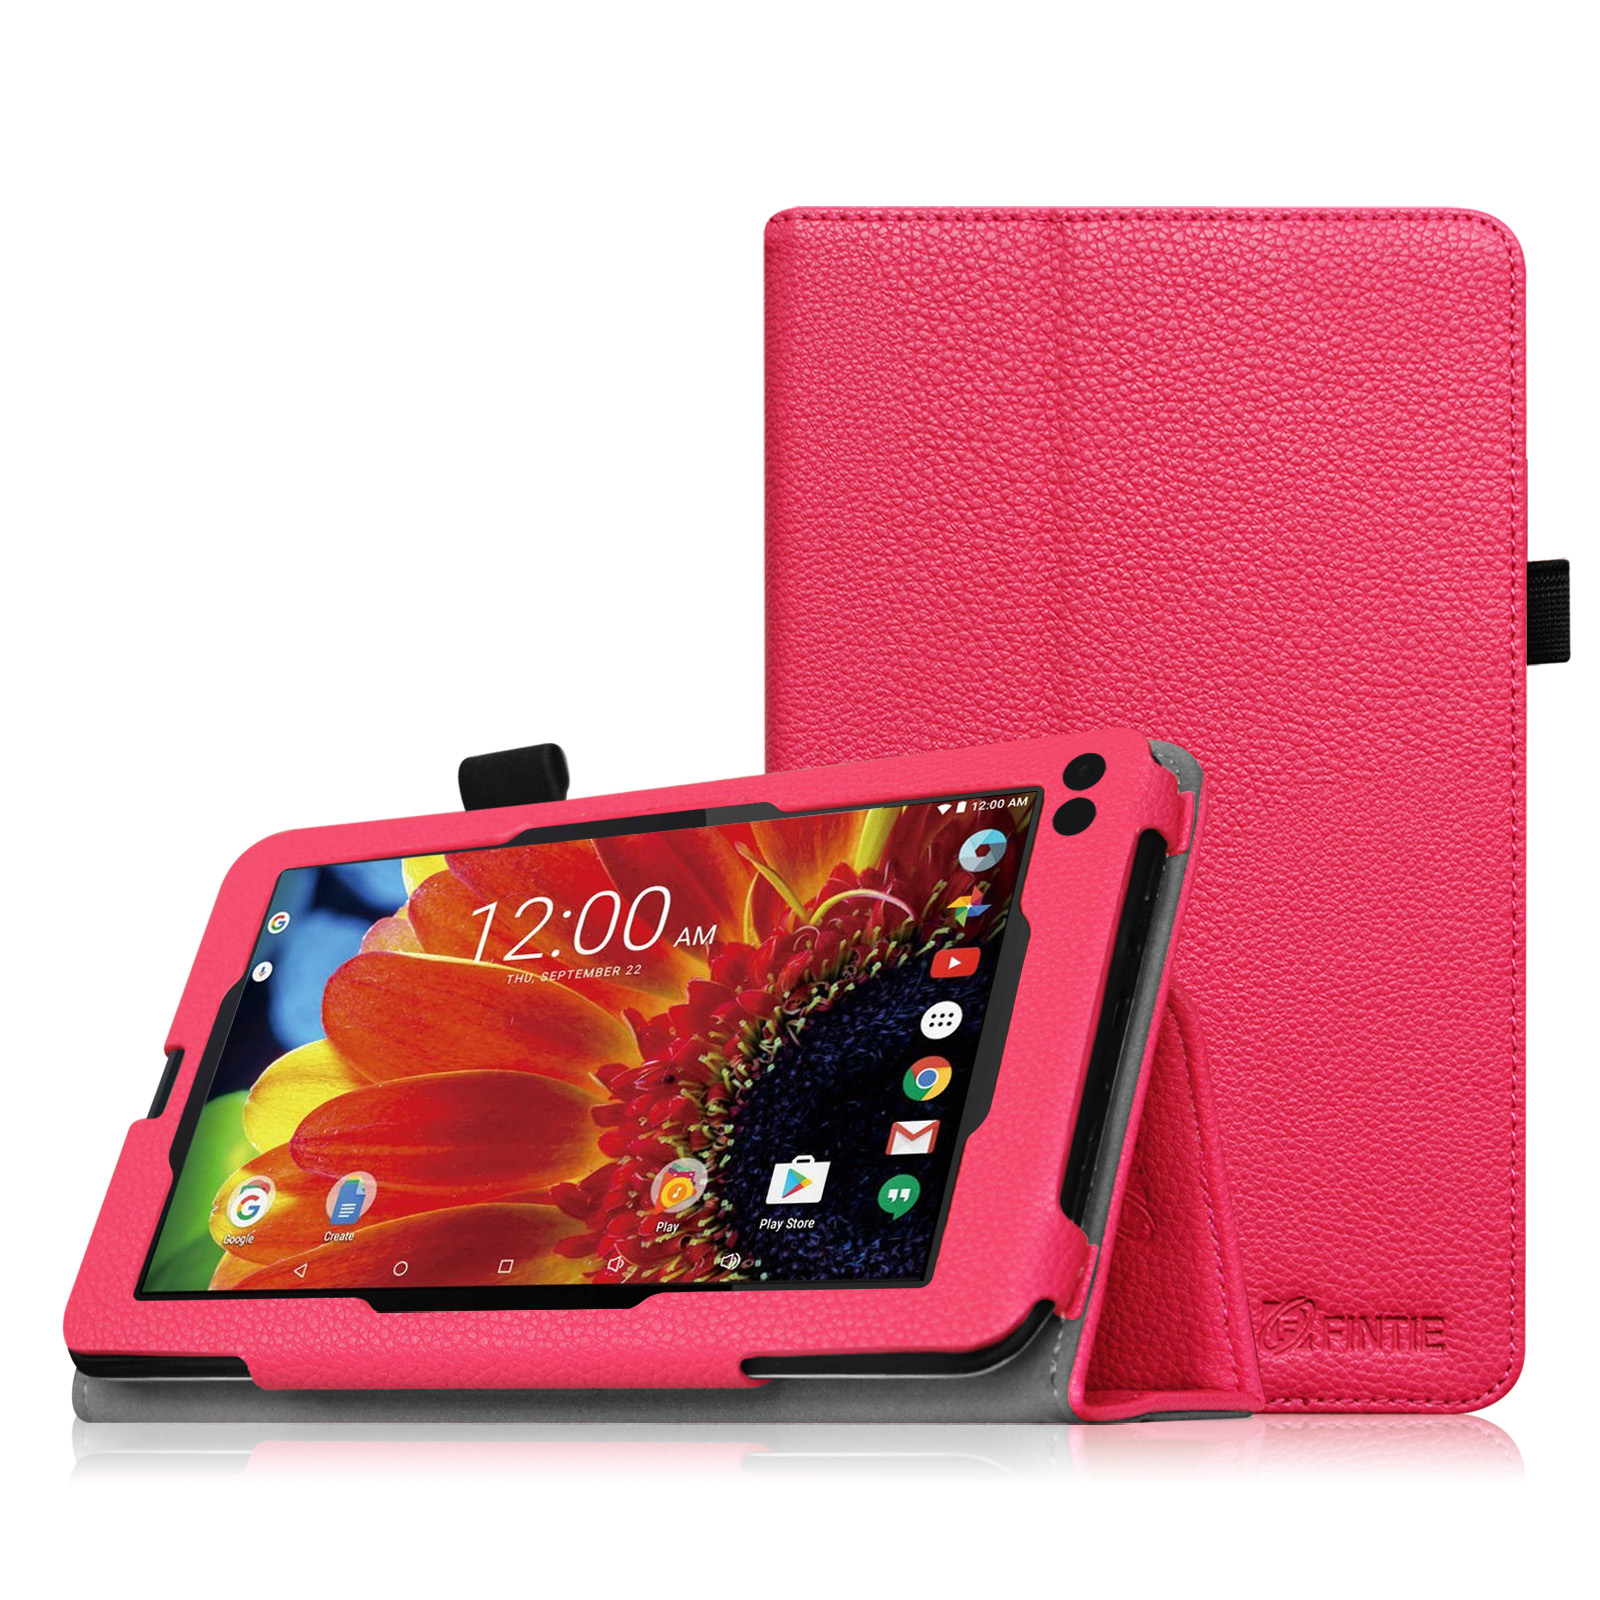 "Fintie Premium PU Leather Folio Case Stand Cover for RCA 7"" Tablet / RCA Voyager II 7"" Tablet WIFI Android, Magenta"